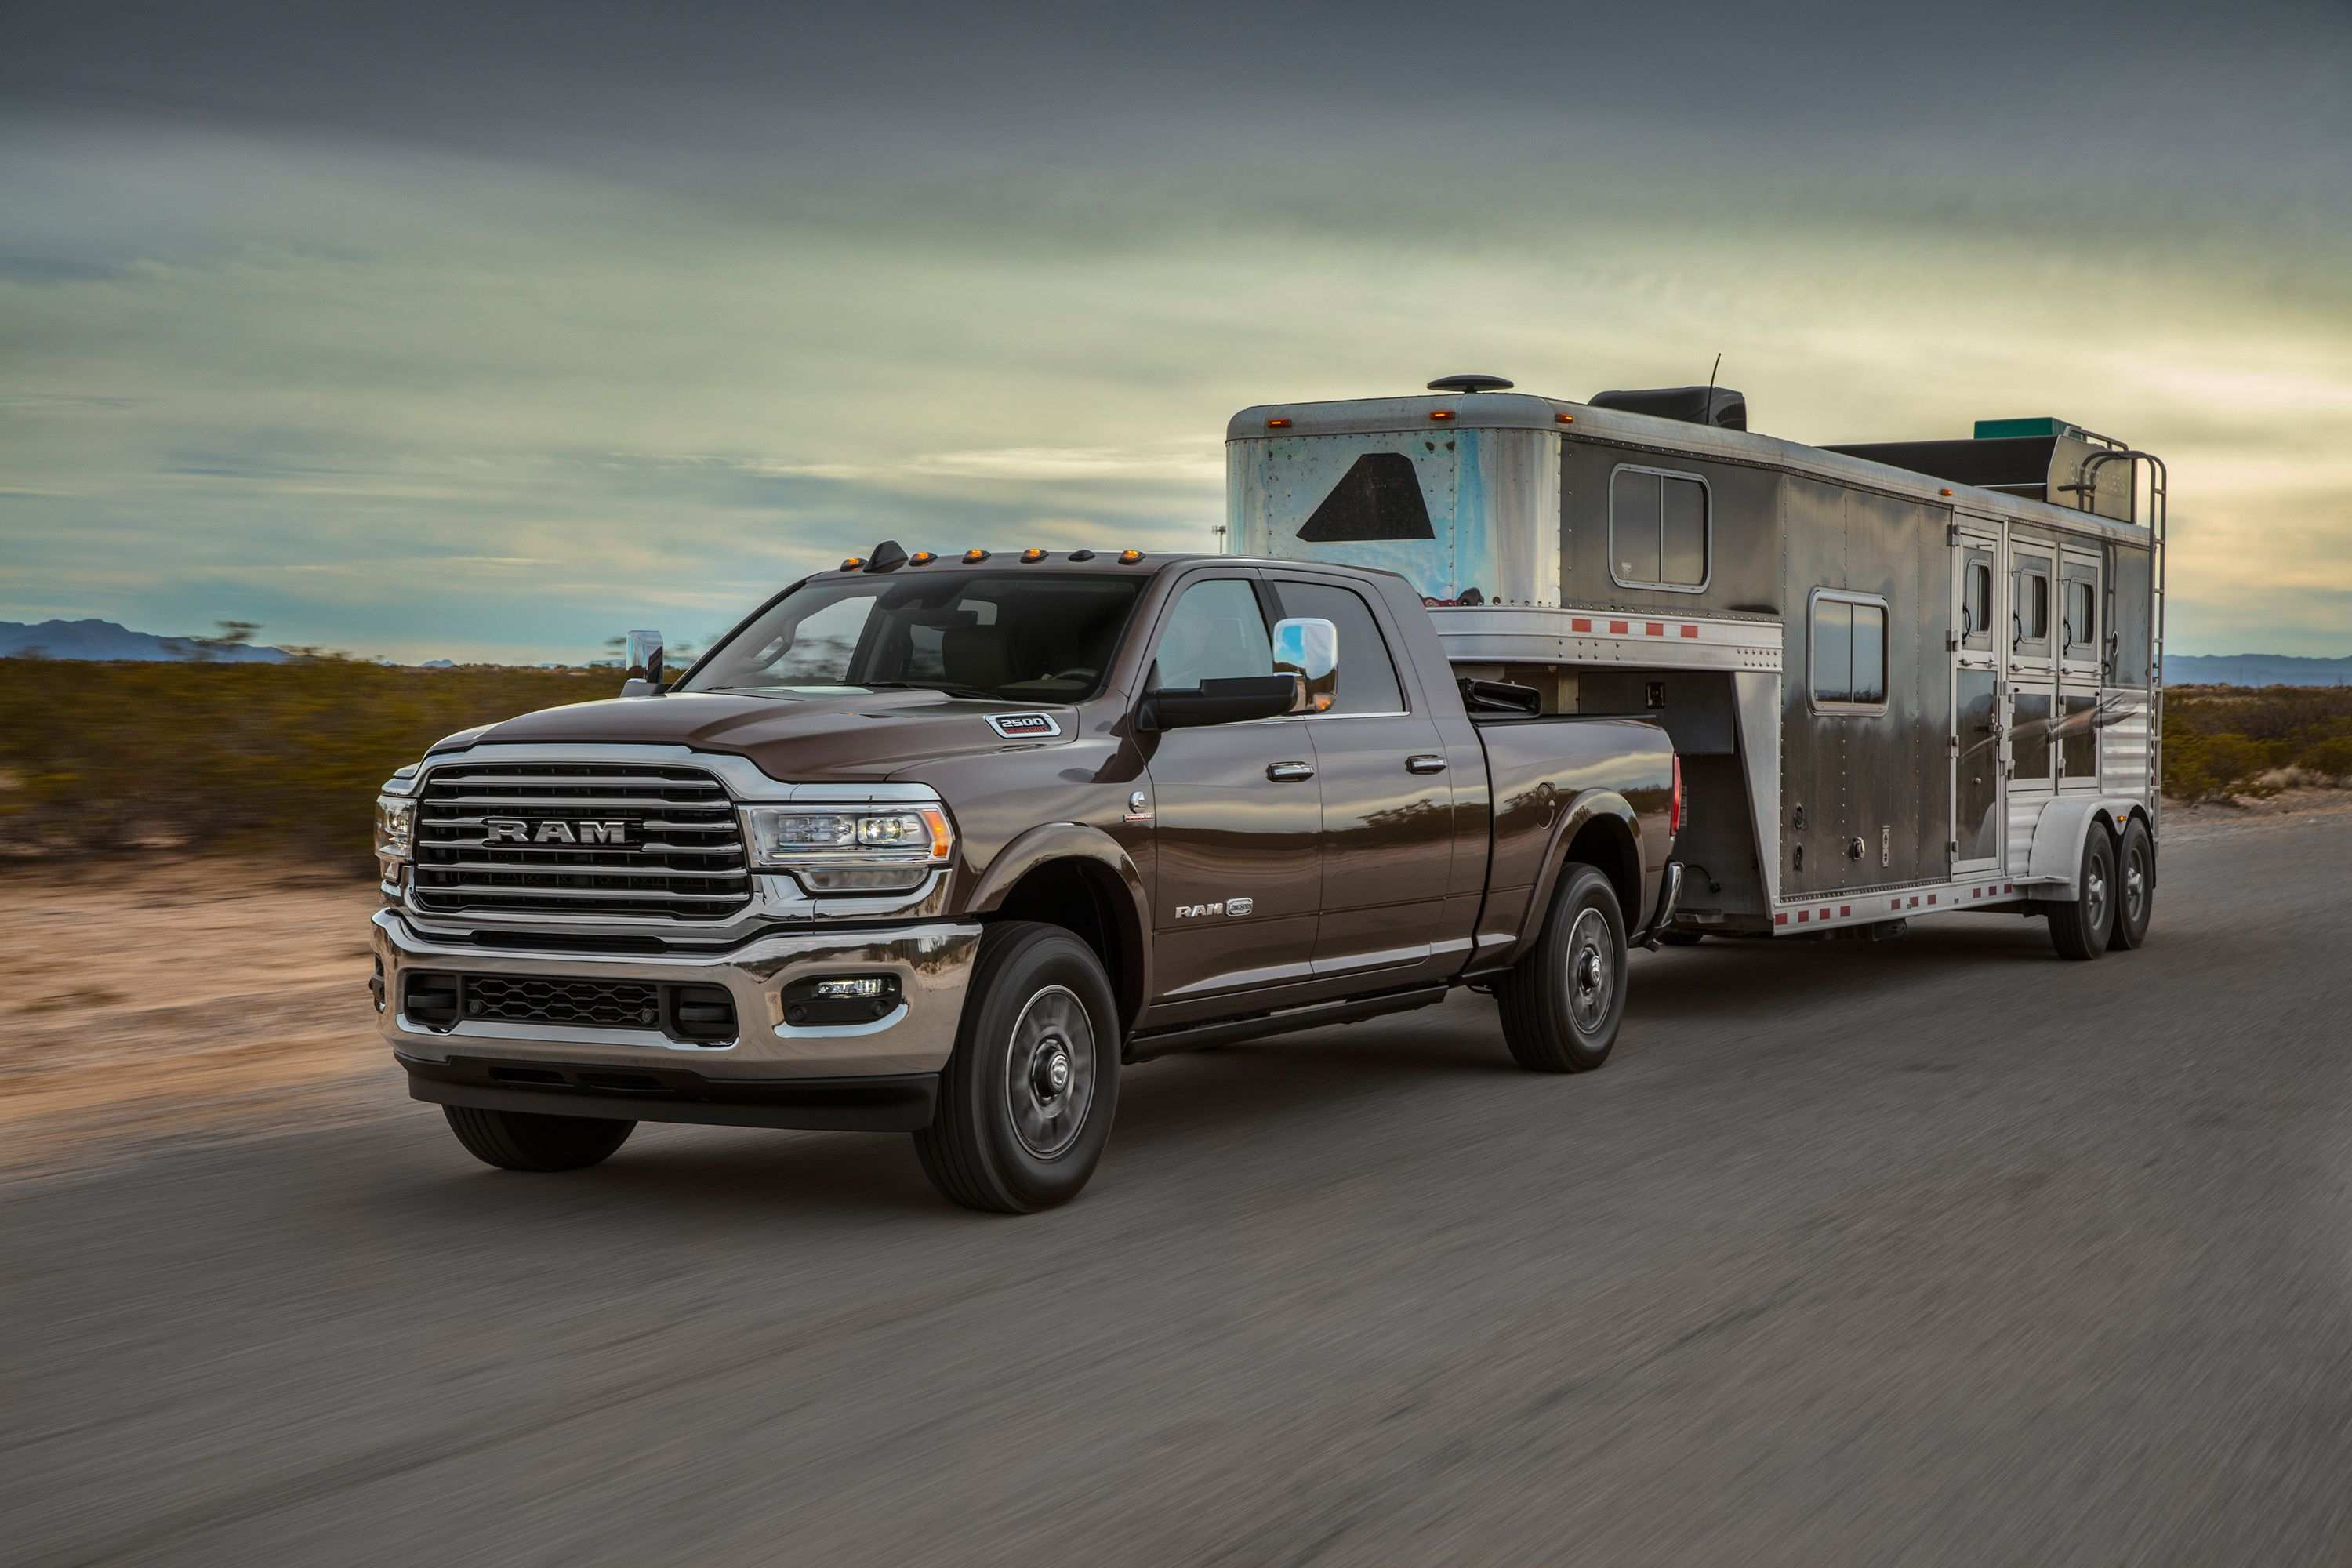 59 Best Dodge Ram 3500 Diesel 2020 Concept and Review